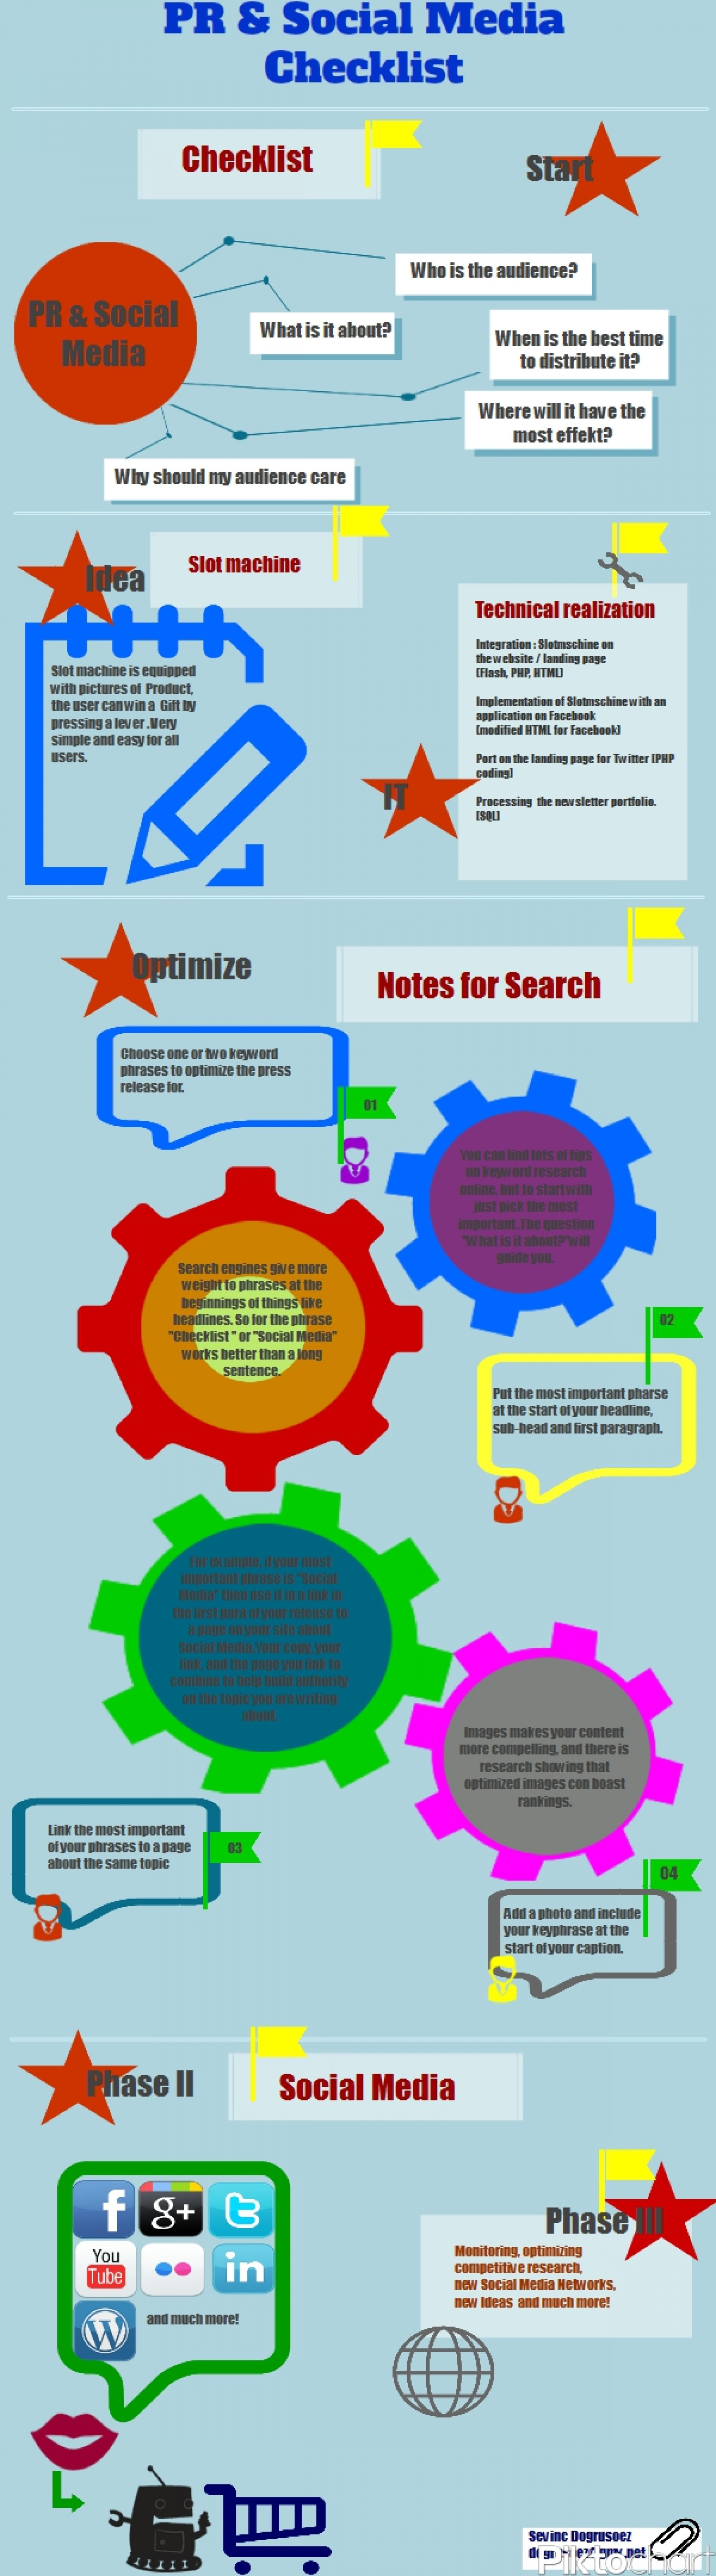 PR&Social Media Checklist Infographic